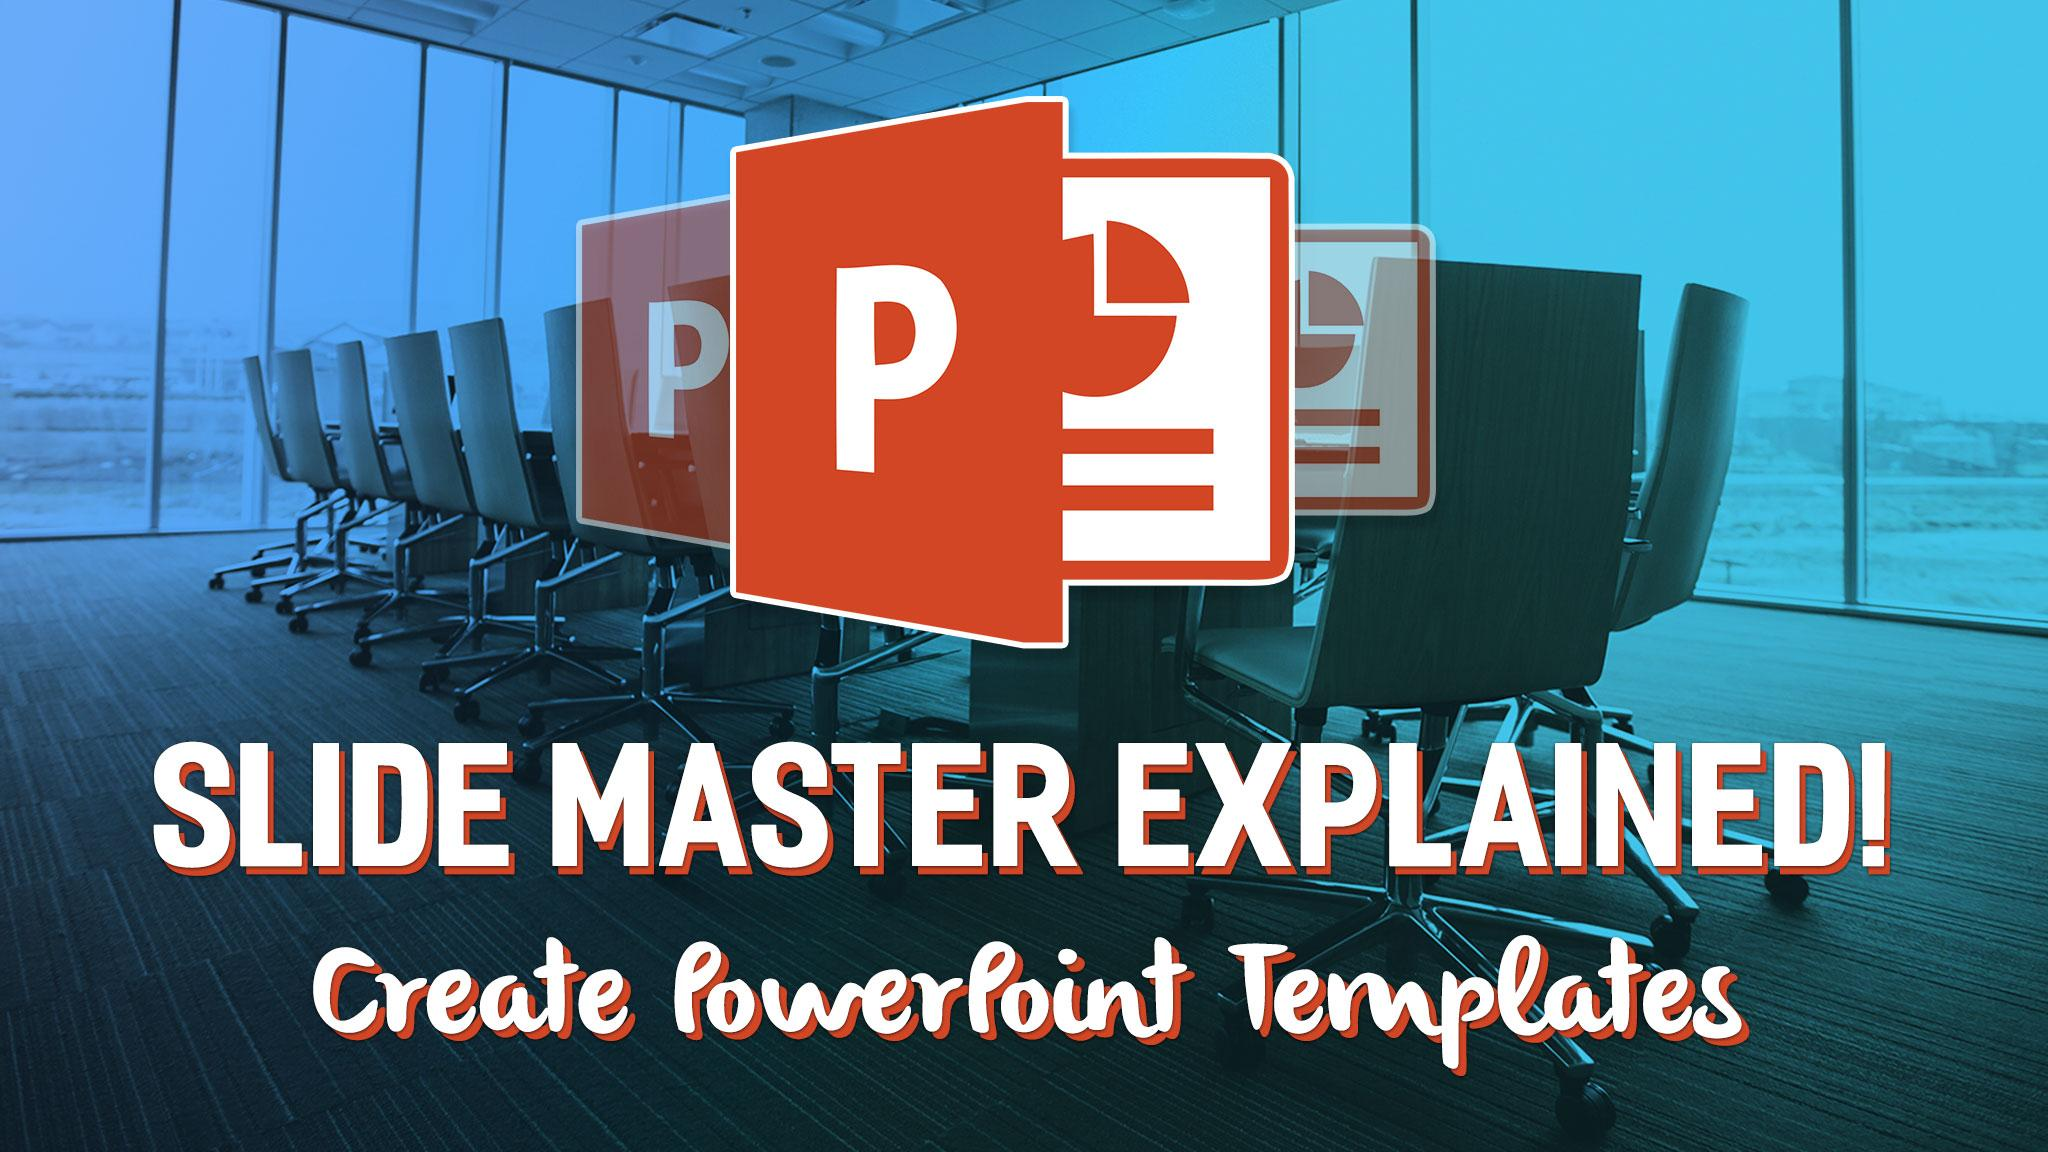 Setting up and creating powerpoint templates slide master explained i cover all the important topics aspects within this class on template and layout creation namely toneelgroepblik